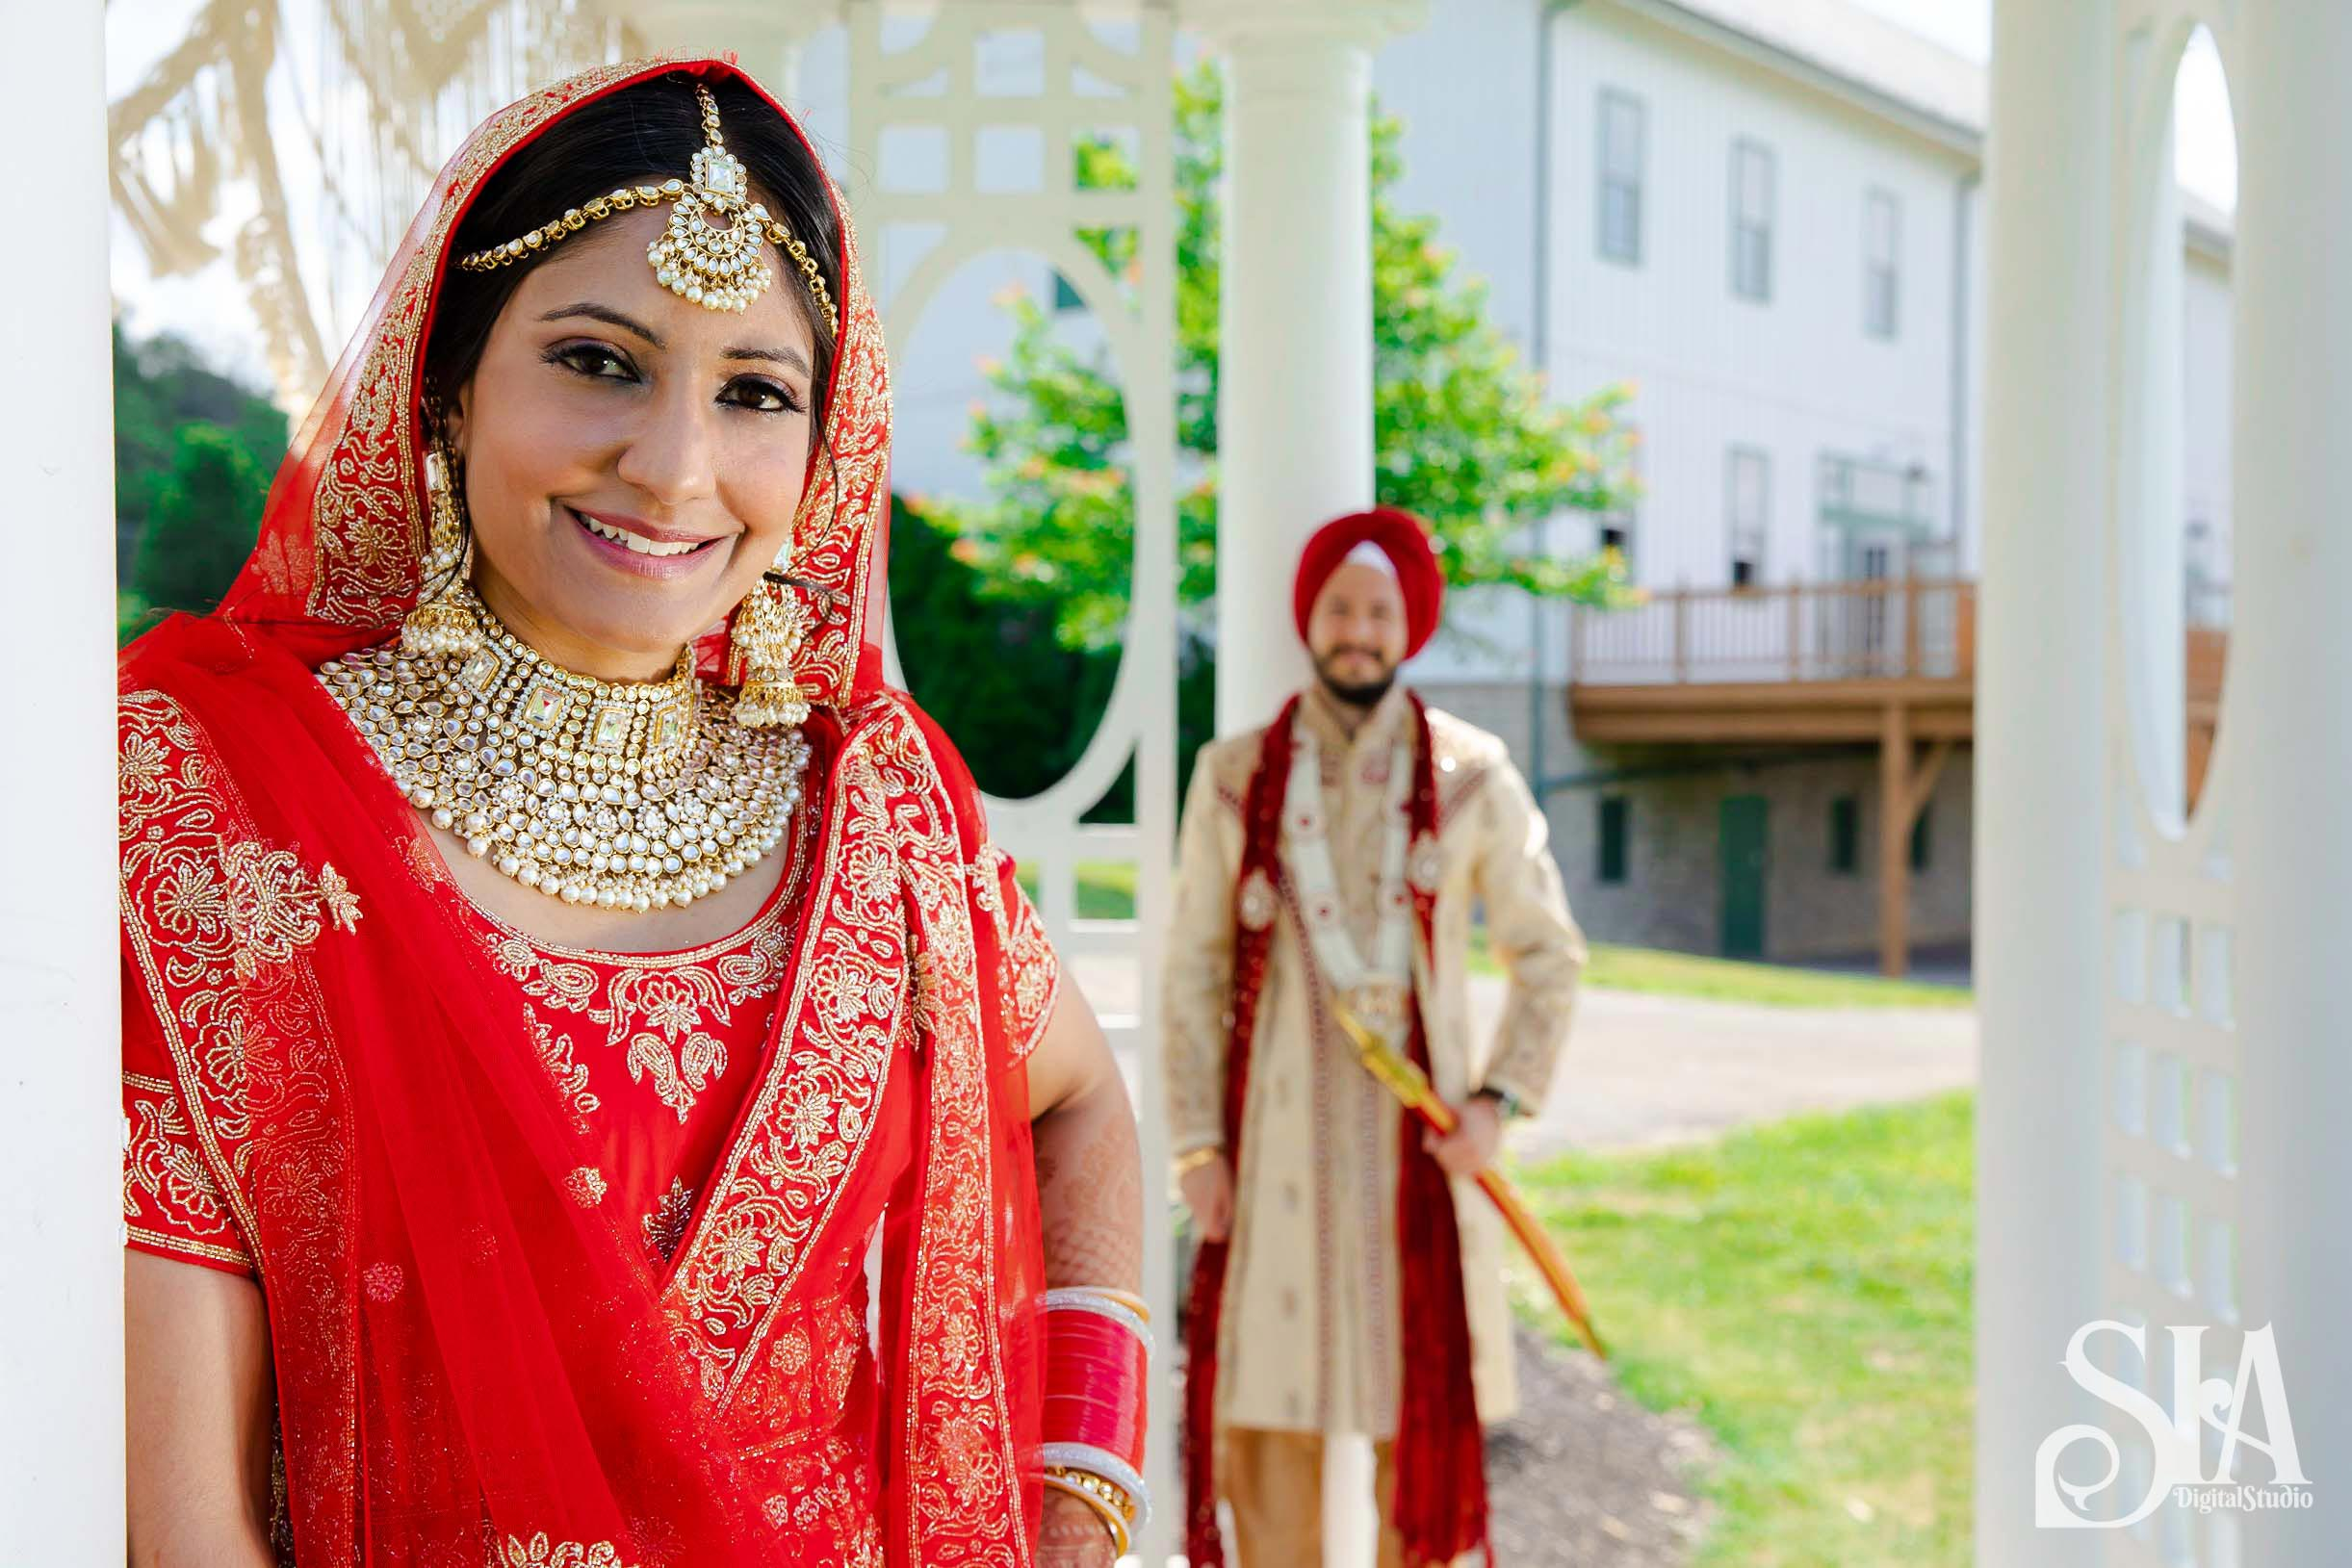 Narinder & Jaymes | The Fun Multi-Cultural Wedding We Had